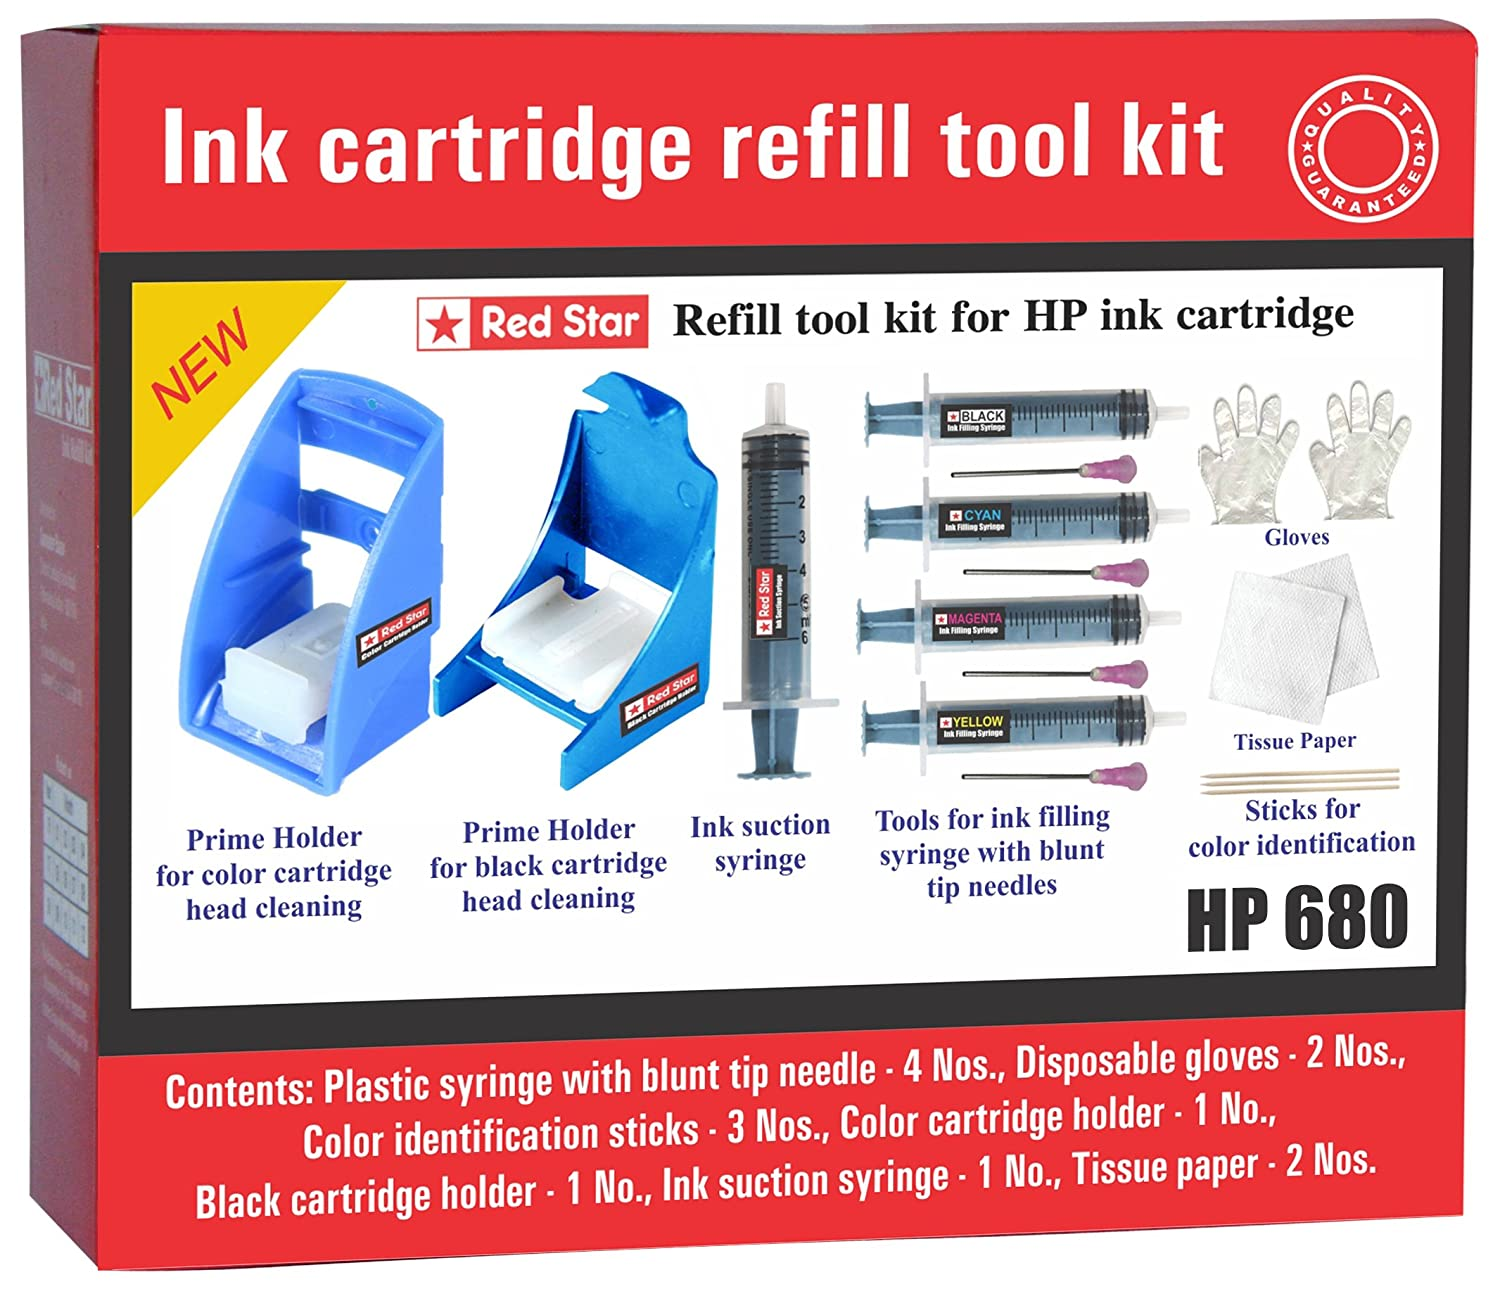 Red Star Ink Refill Tool Kit For Hp 680 Cartridge Filling And Tinta Black Color Original Head Cleaning Suction Priming Computers Accessories